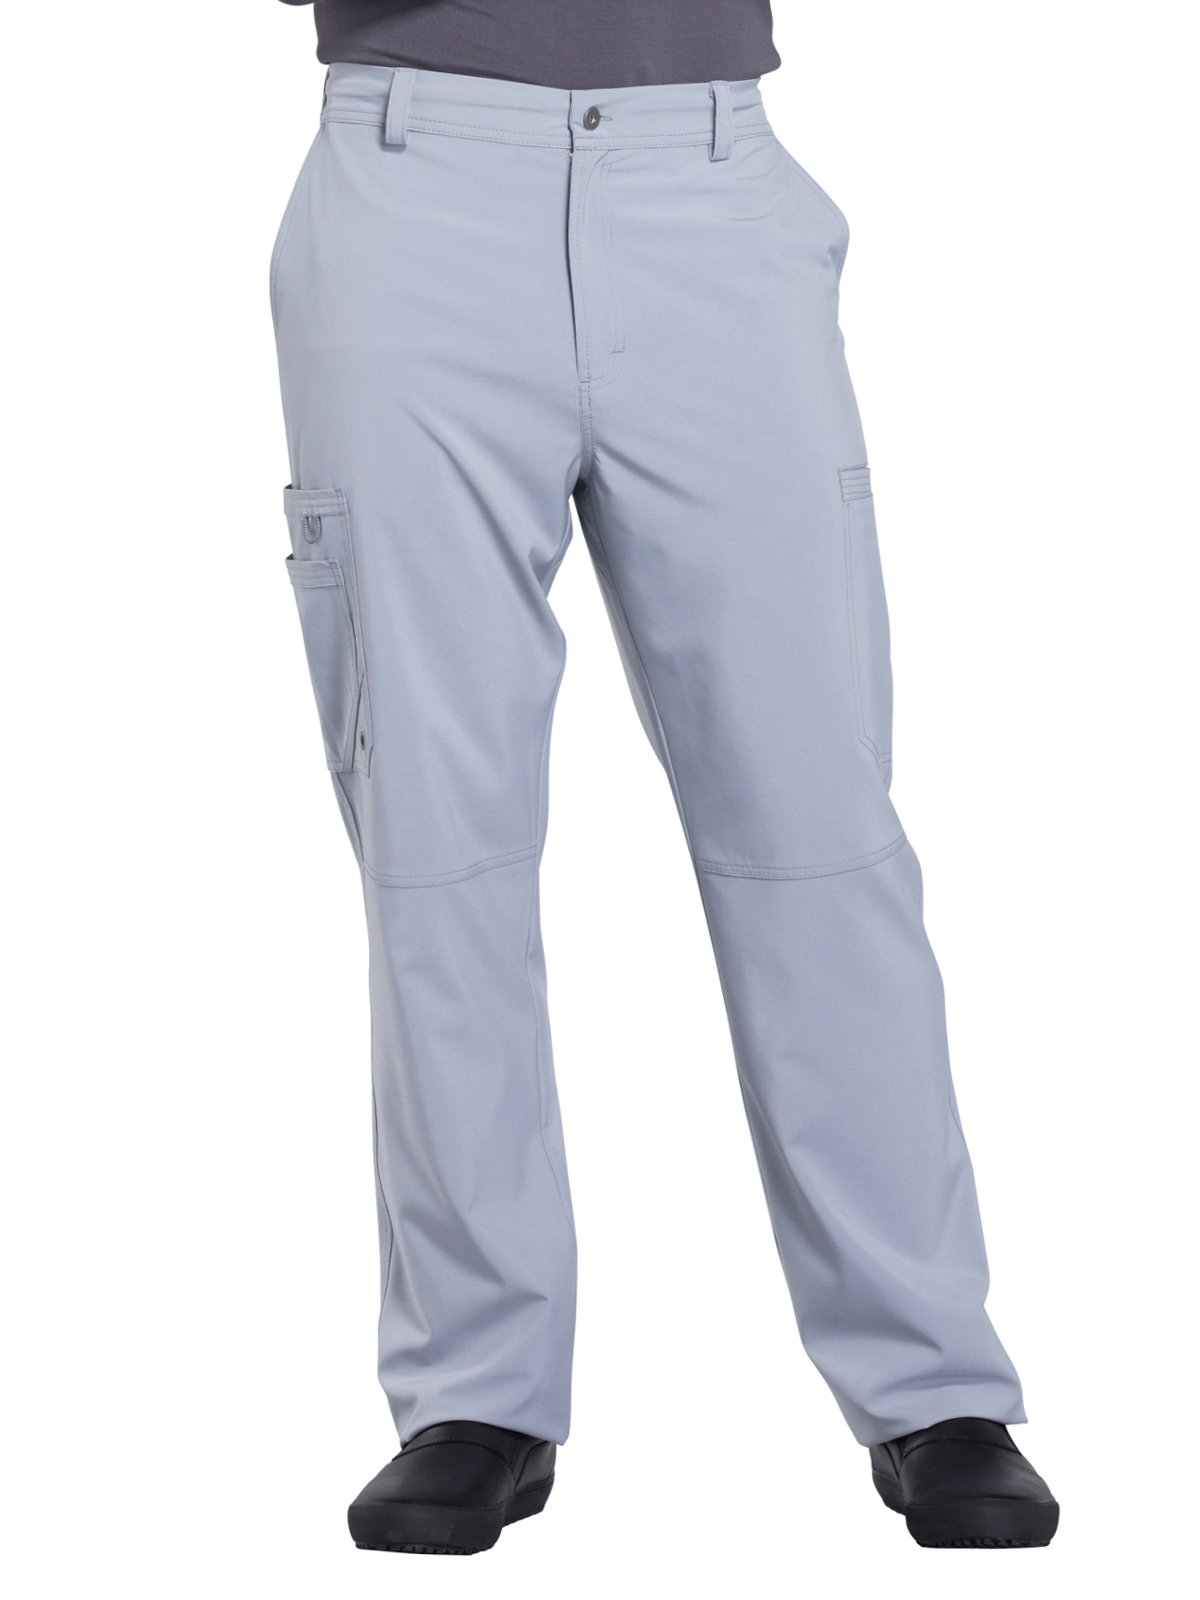 Infinity by Cherokee CK200AS Men's Men's Fly Front Pant